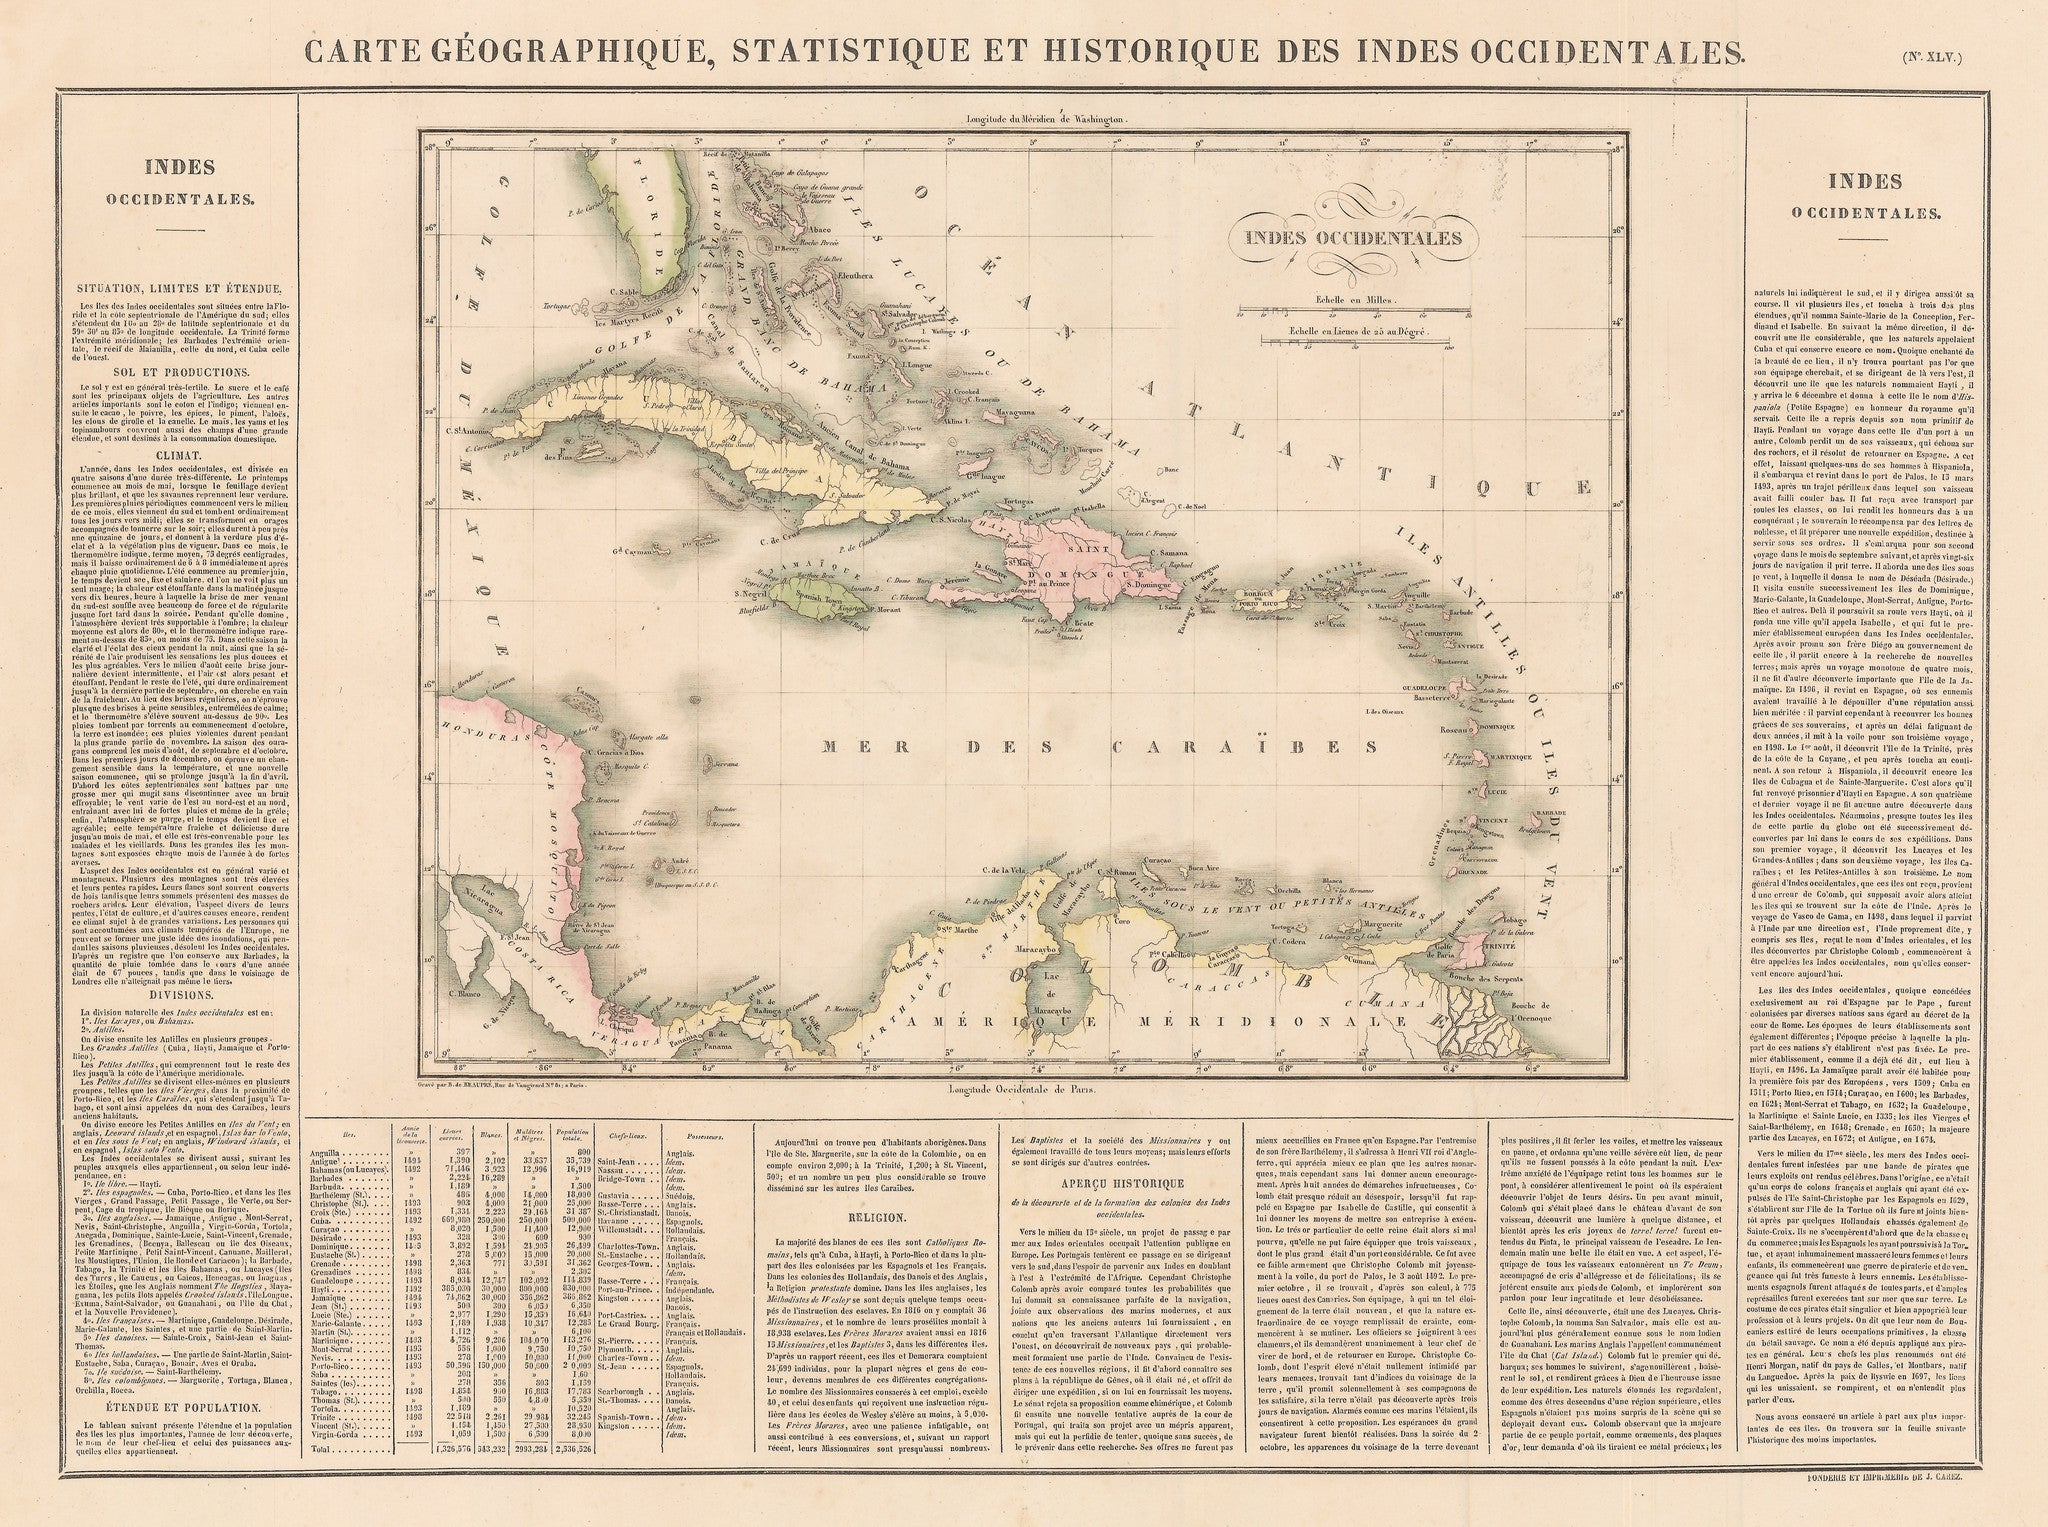 Authentic Antique Map of the Caribbean: Carte Geographique, Statistique et Historique des Indes Occidentales By: Jean Alexandre Buchon Date: 1825 (published) Paris